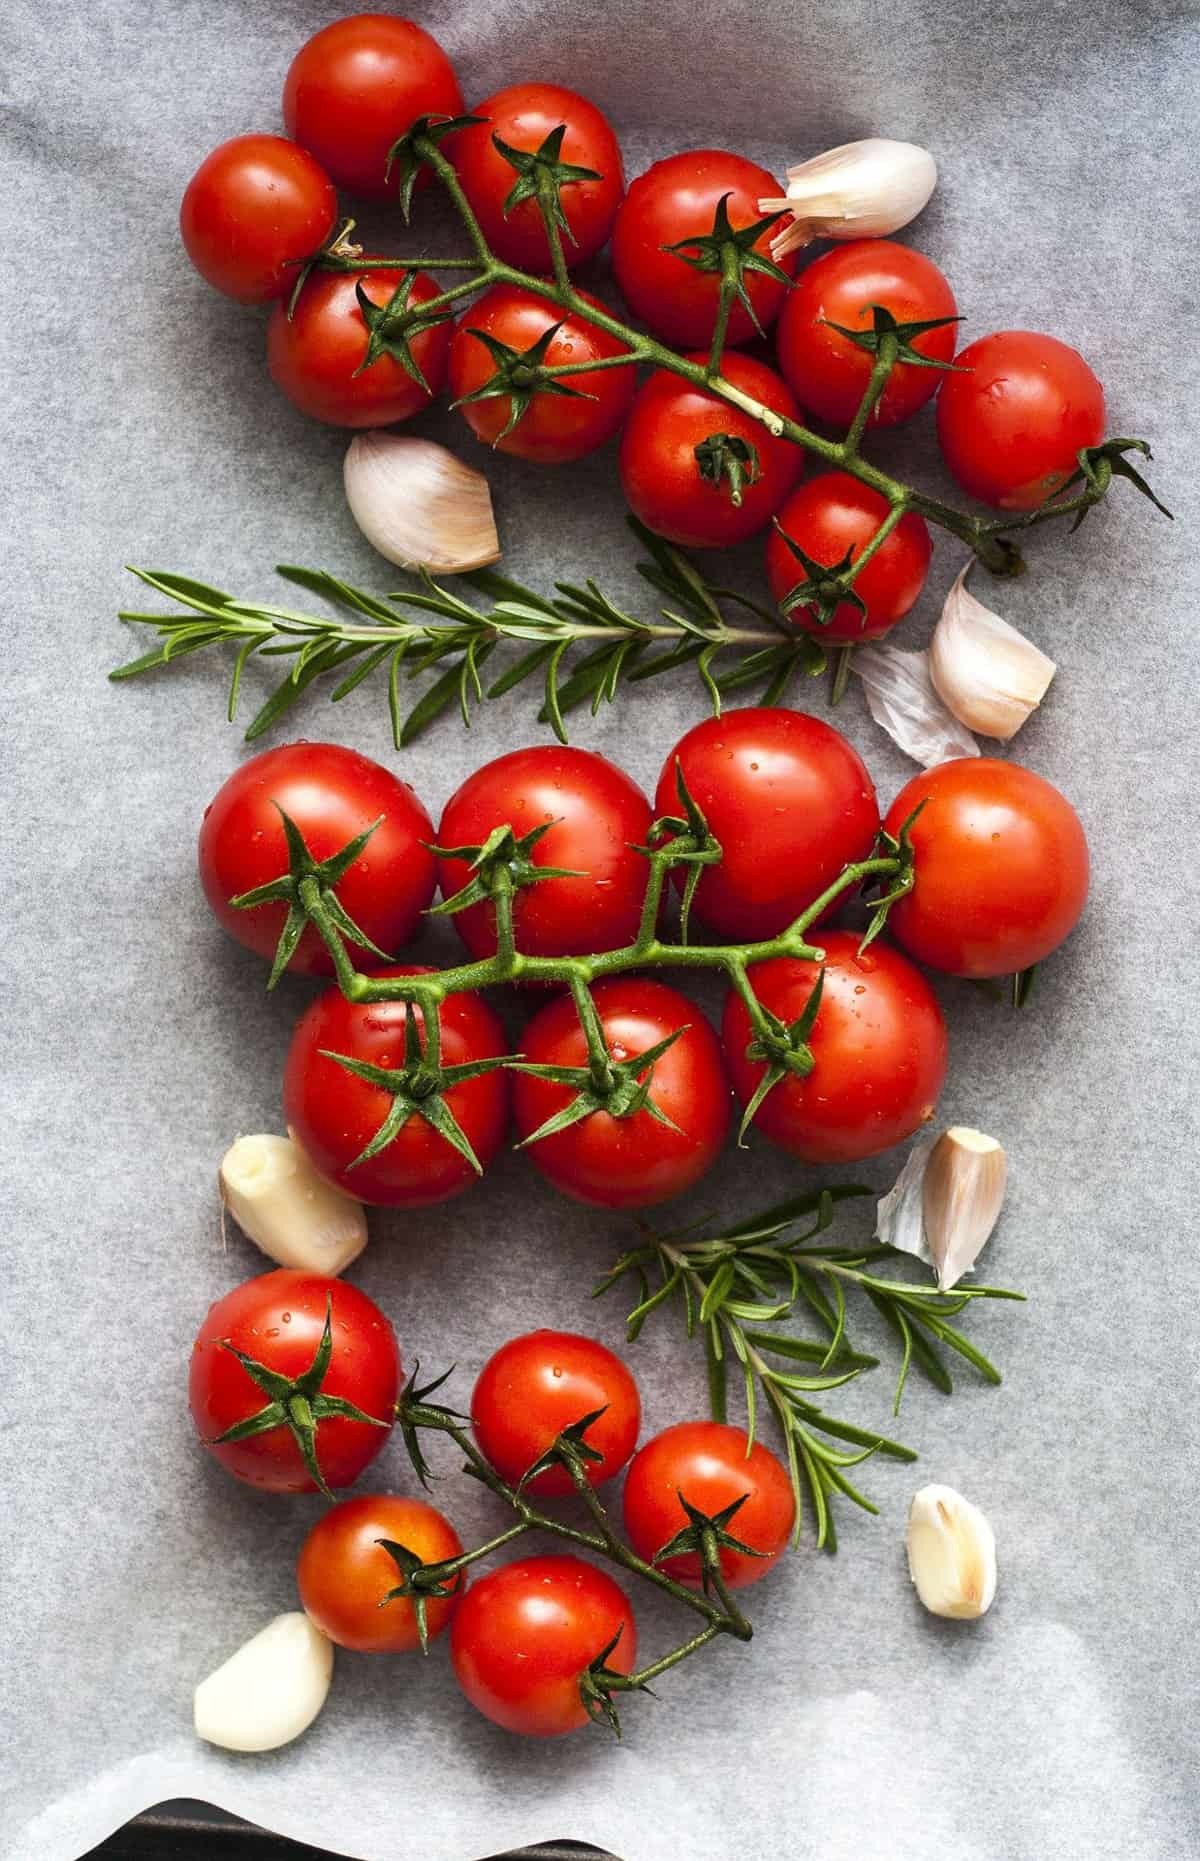 Three bunches of cherry tomatoes and garlic on a parchment paper